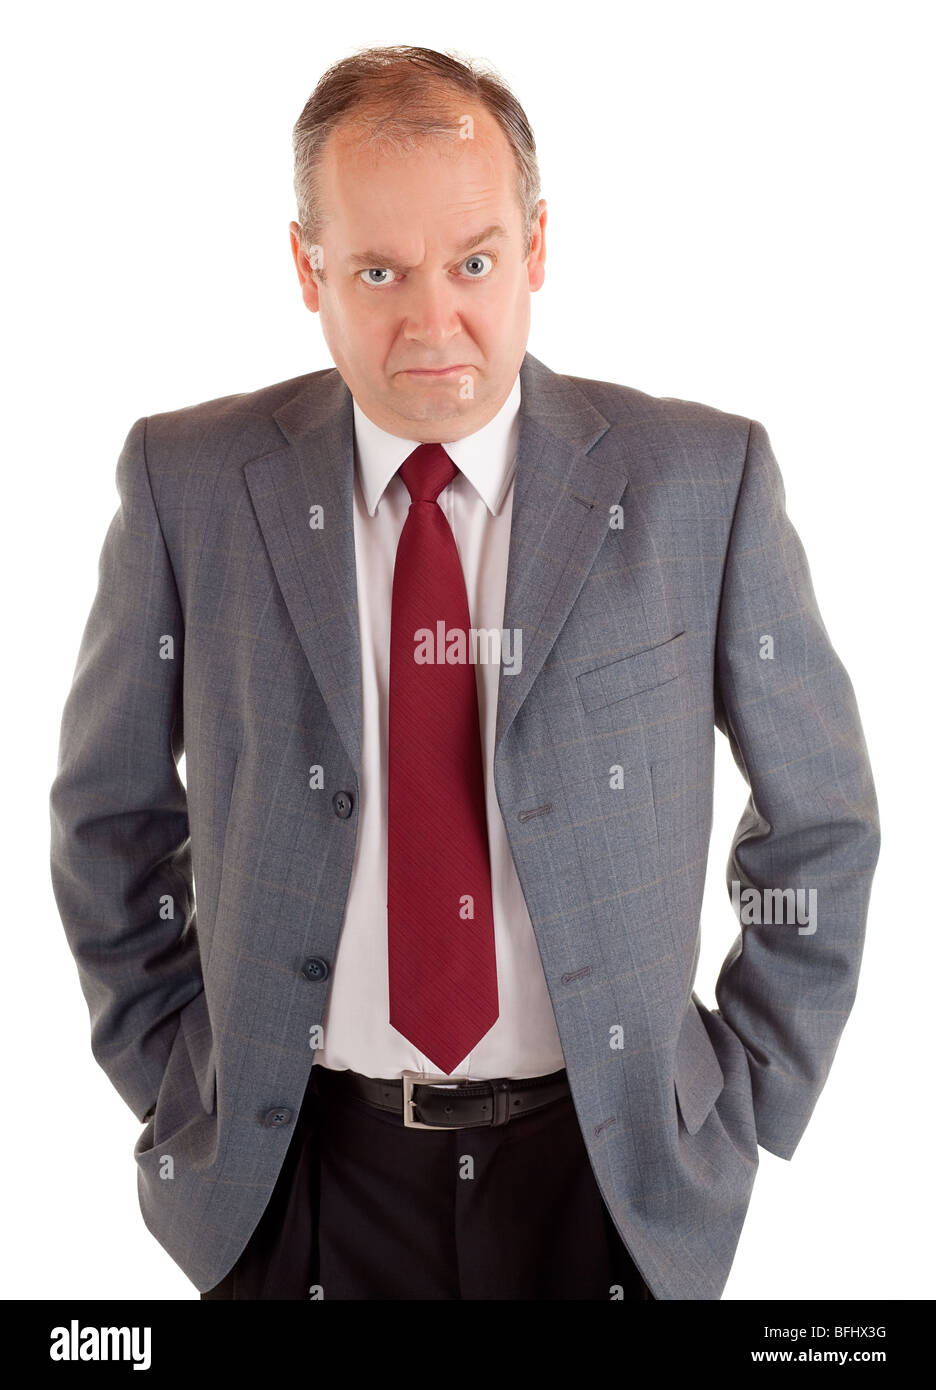 A businessman is standing and seriously looking at the camera with a scowling expression. - Stock Image